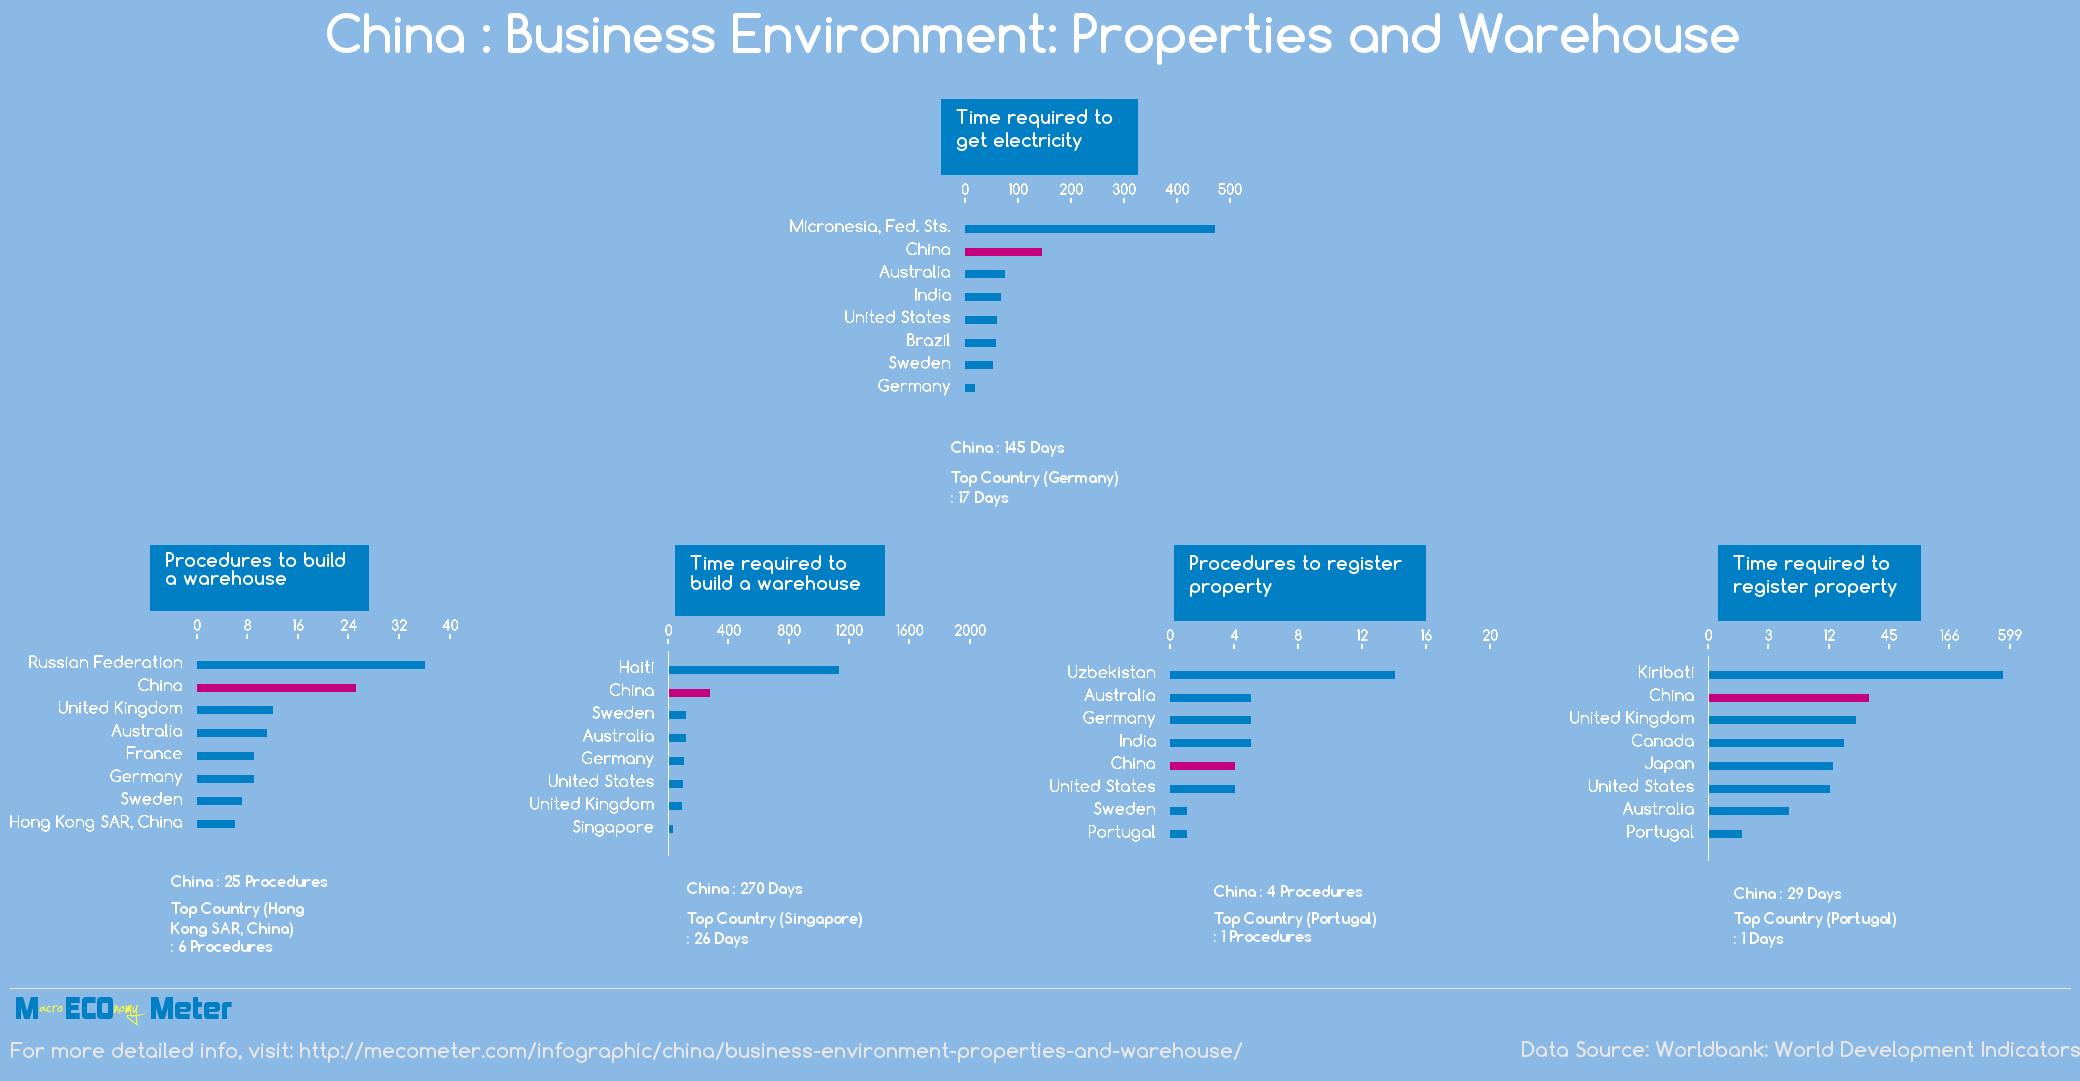 China : Business Environment: Properties and Warehouse